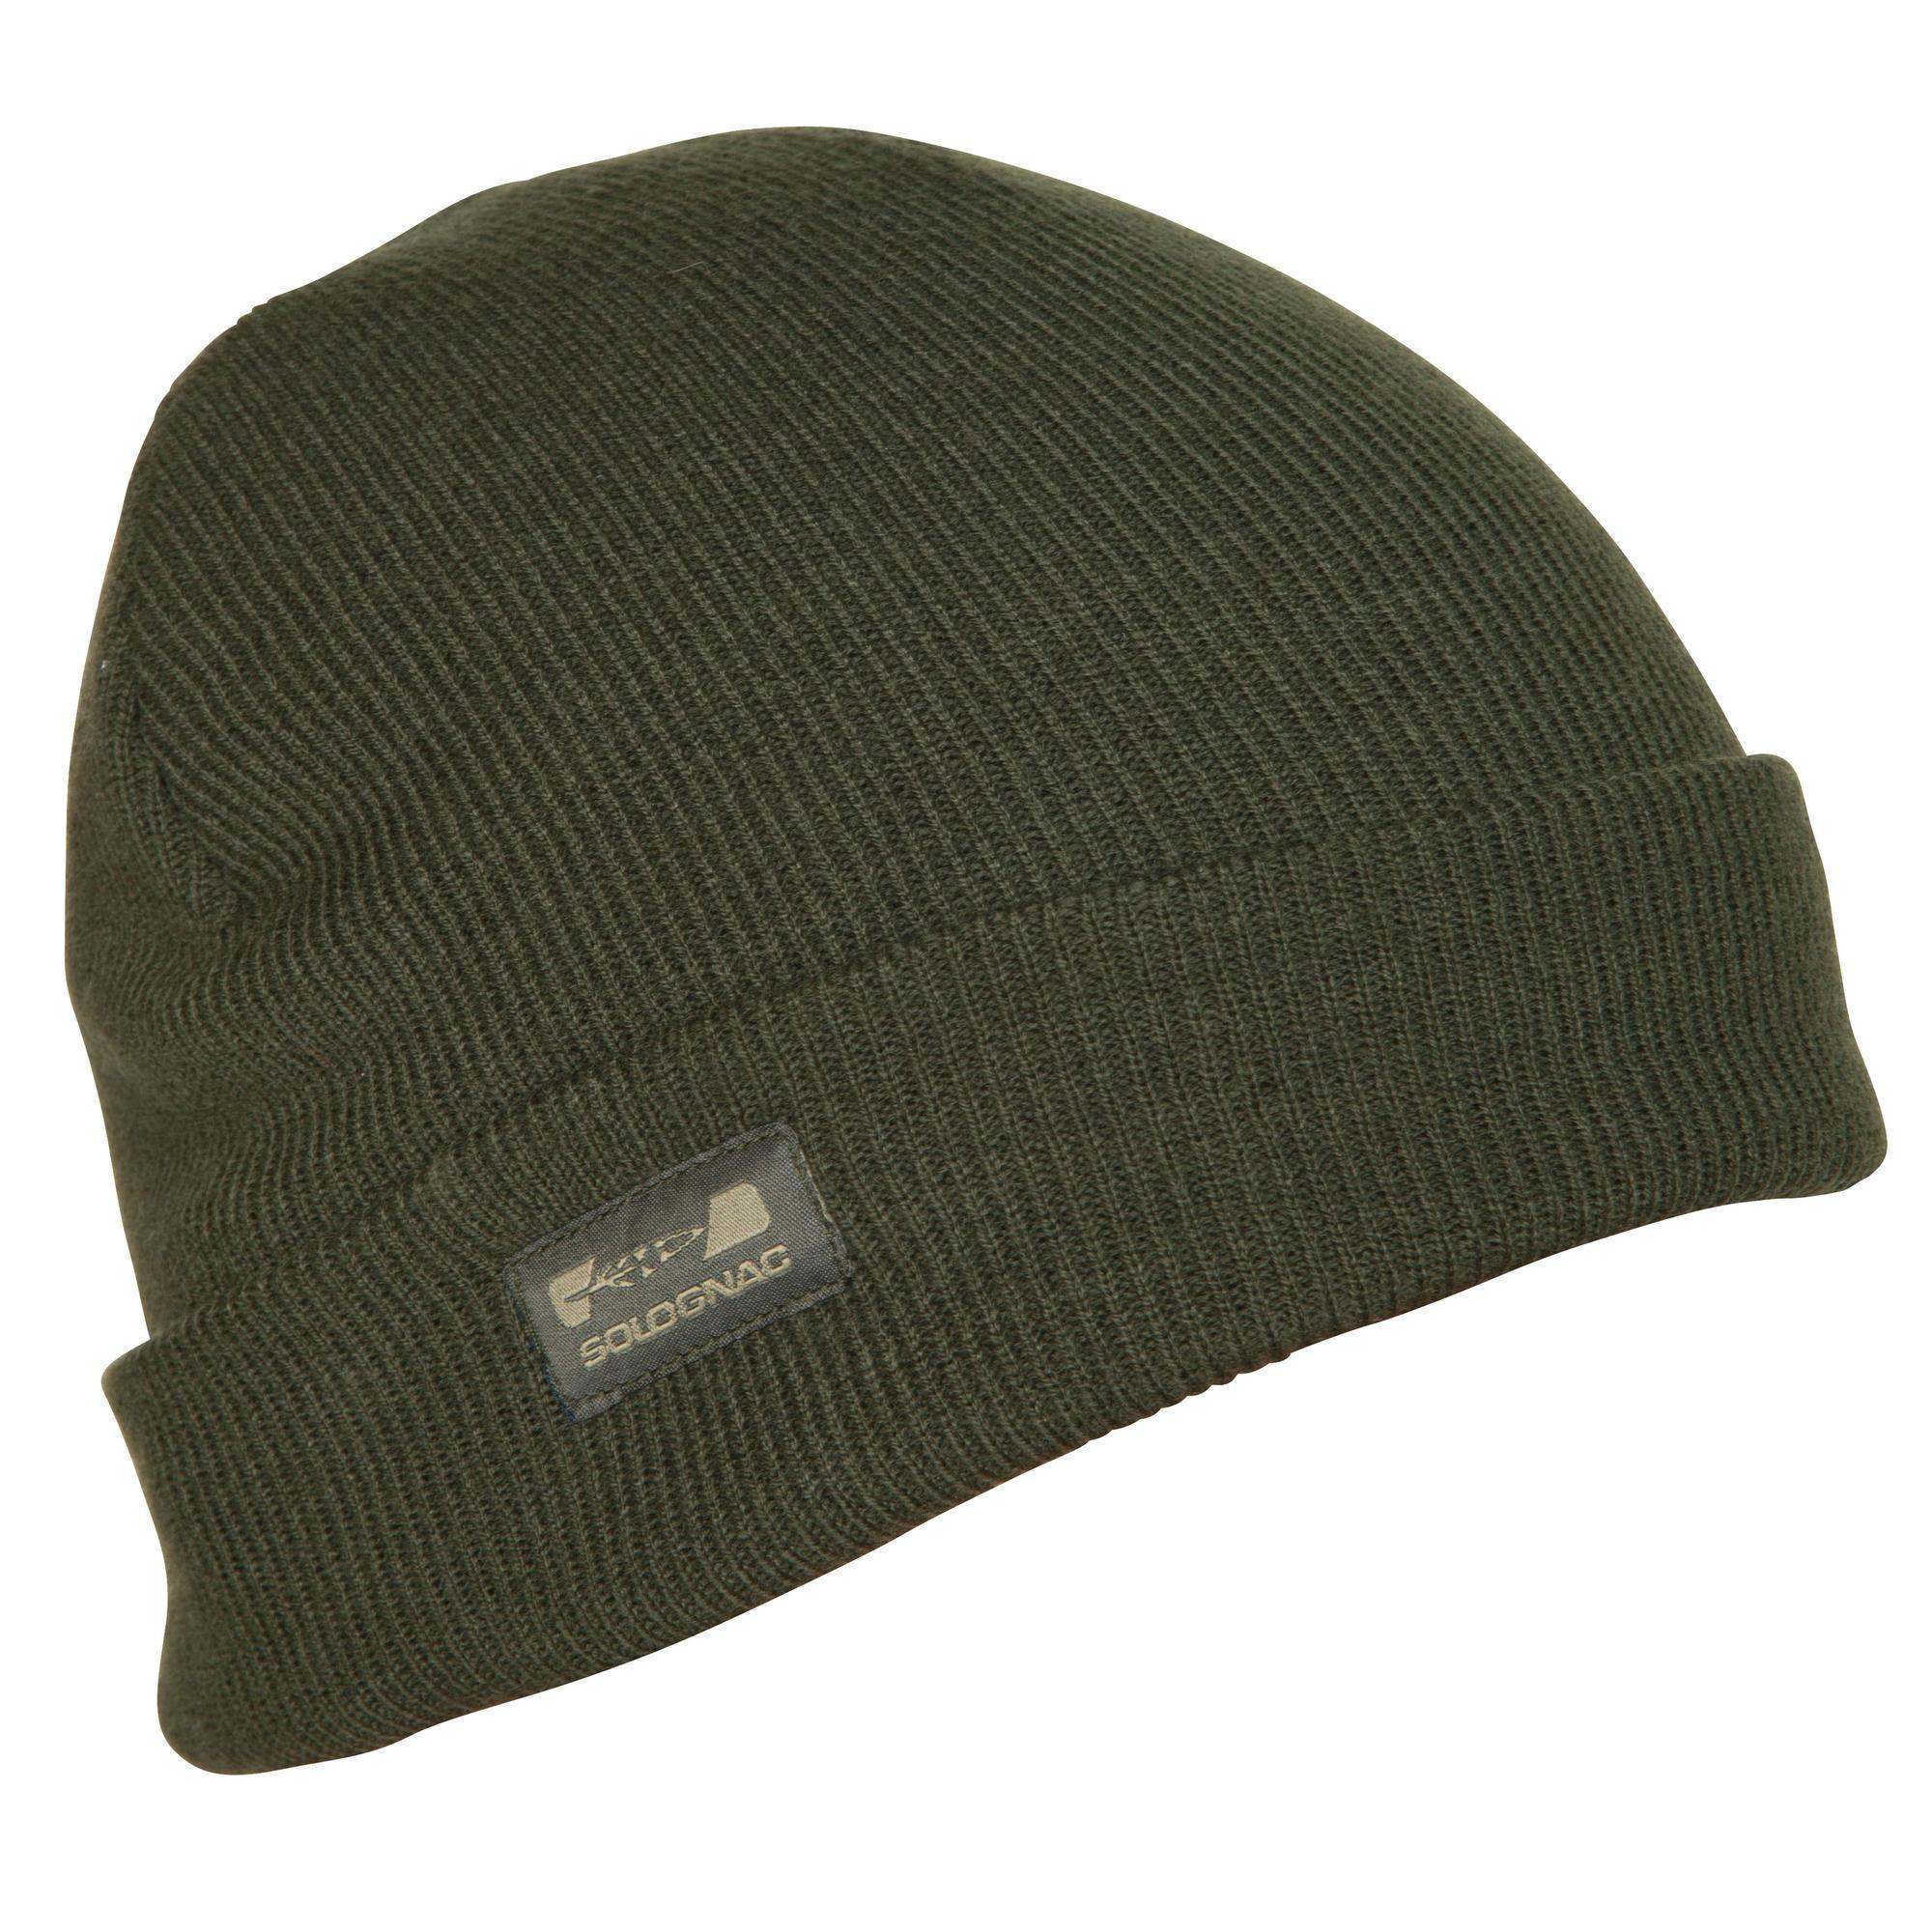 bc26aa4d7a2 300 LARCH Hunting Hat - Green